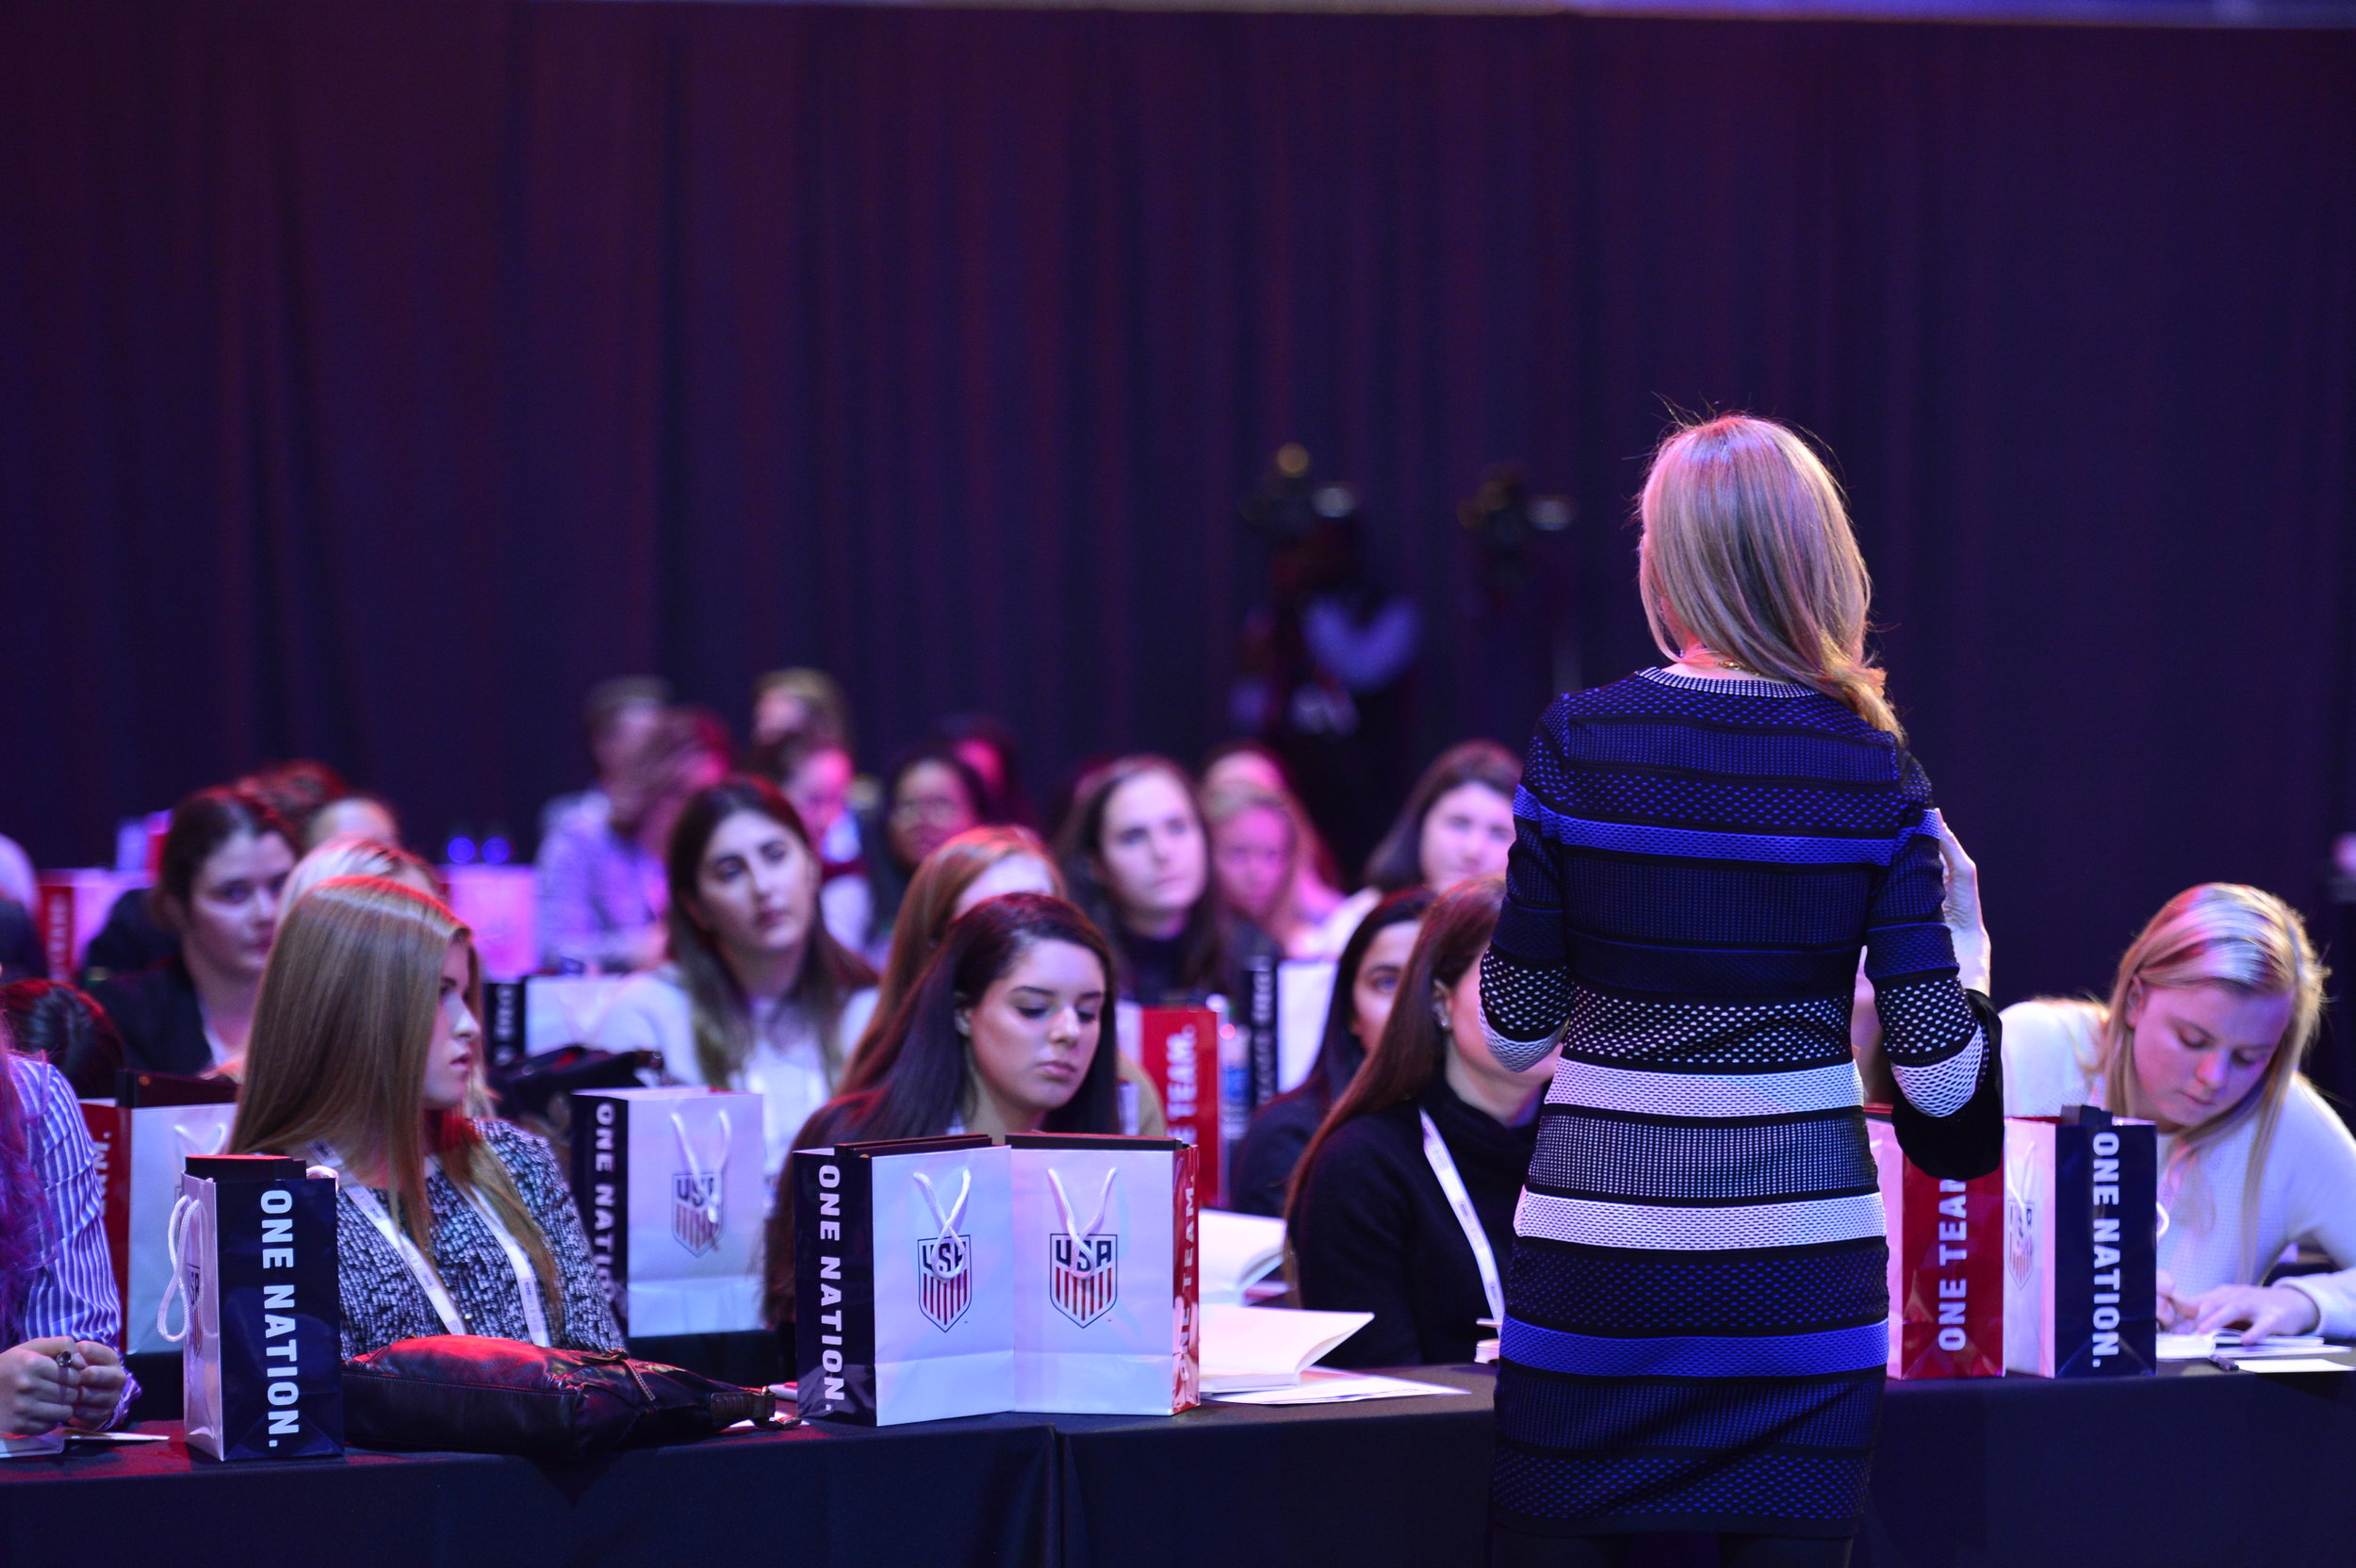 Marry Wittenberg speaks about mentorships and relationships during the SheBelieves in Her Abilities breakout session.